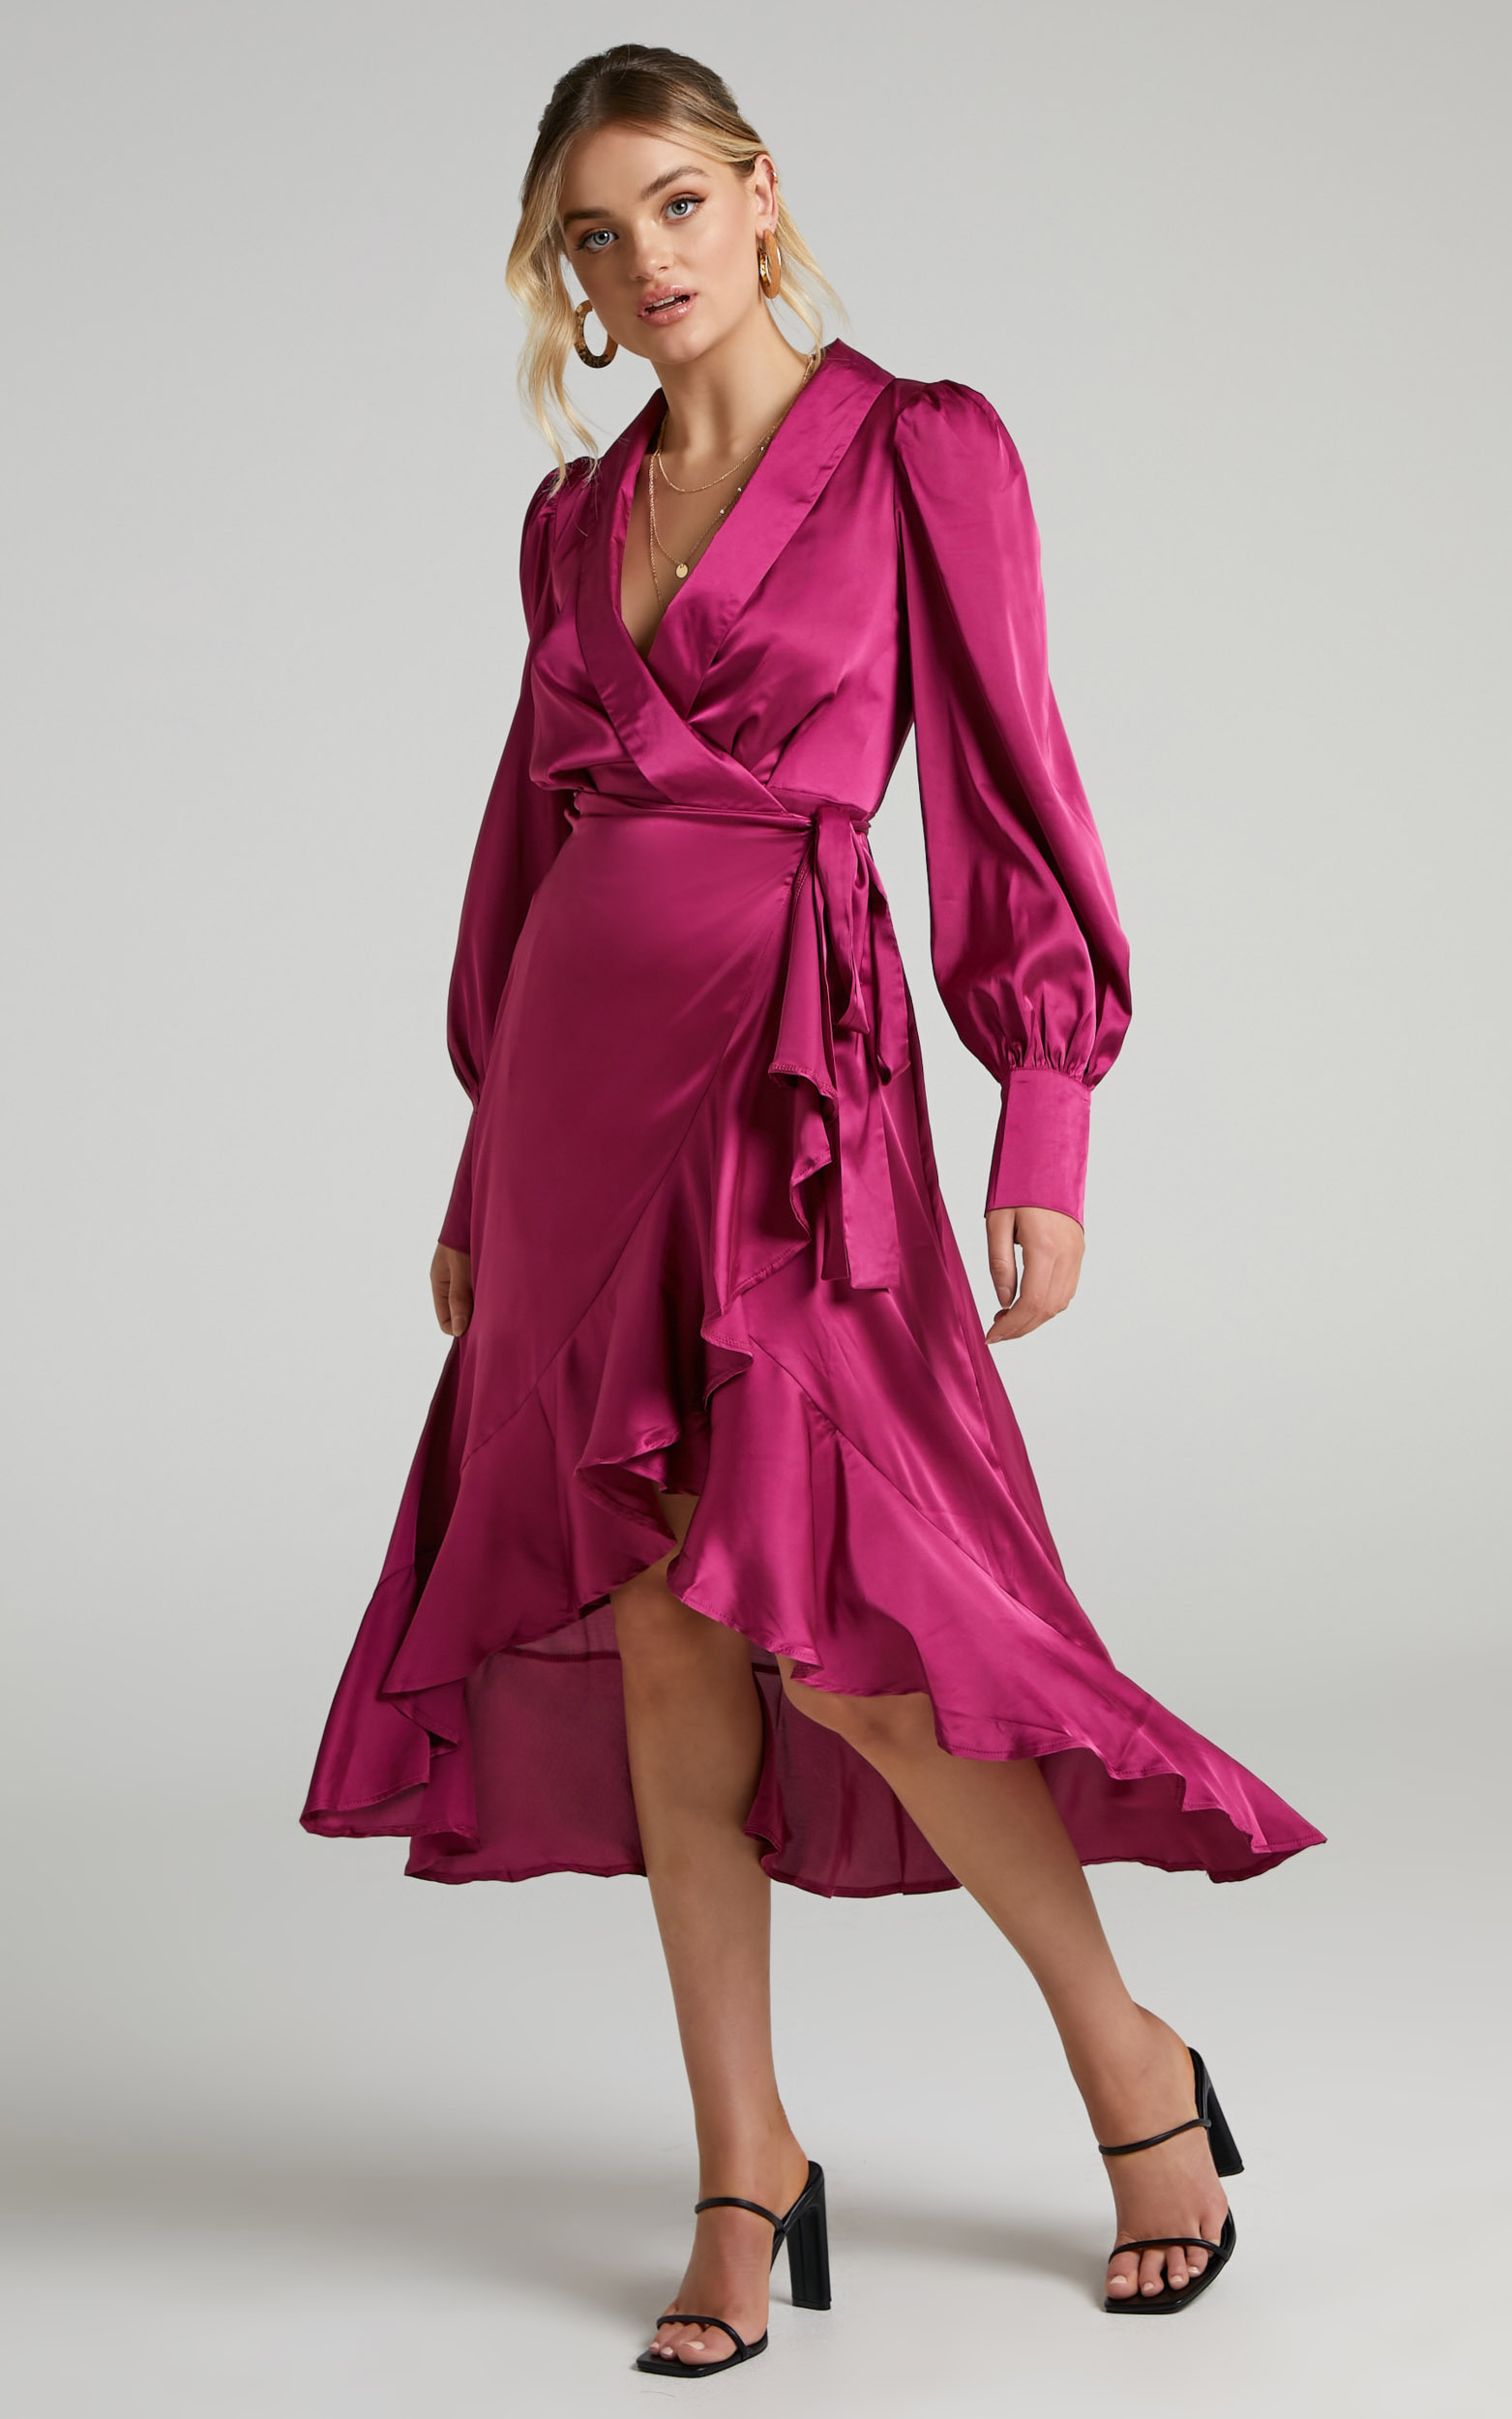 Rada Long Sleeve Frill Wrap Midi Dress in Berry - 04, PNK2, hi-res image number null